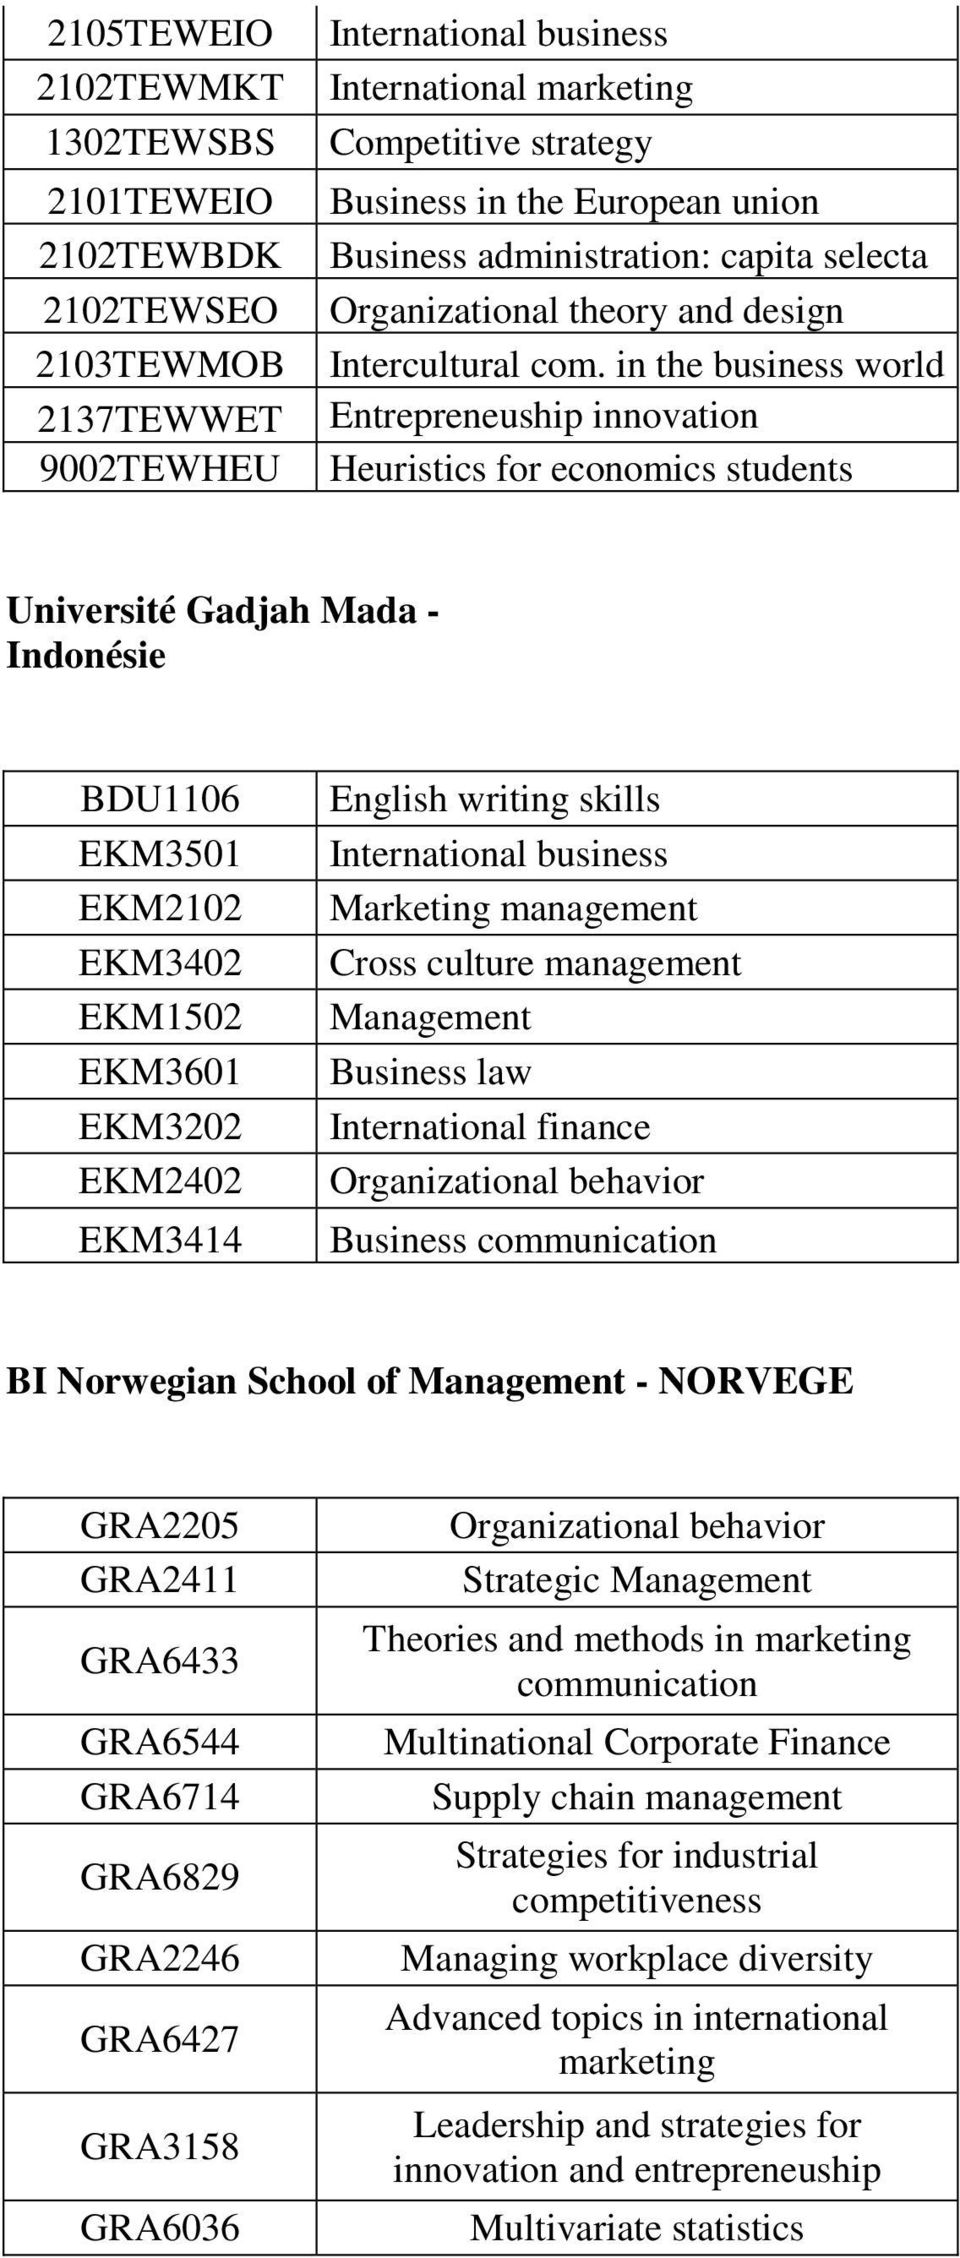 in the business world Entrepreneuship innovation Heuristics for economics students Université Gadjah Mada - Indonésie BDU1106 EKM3501 EKM2102 EKM3402 EKM1502 EKM3601 EKM3202 EKM2402 EKM3414 English